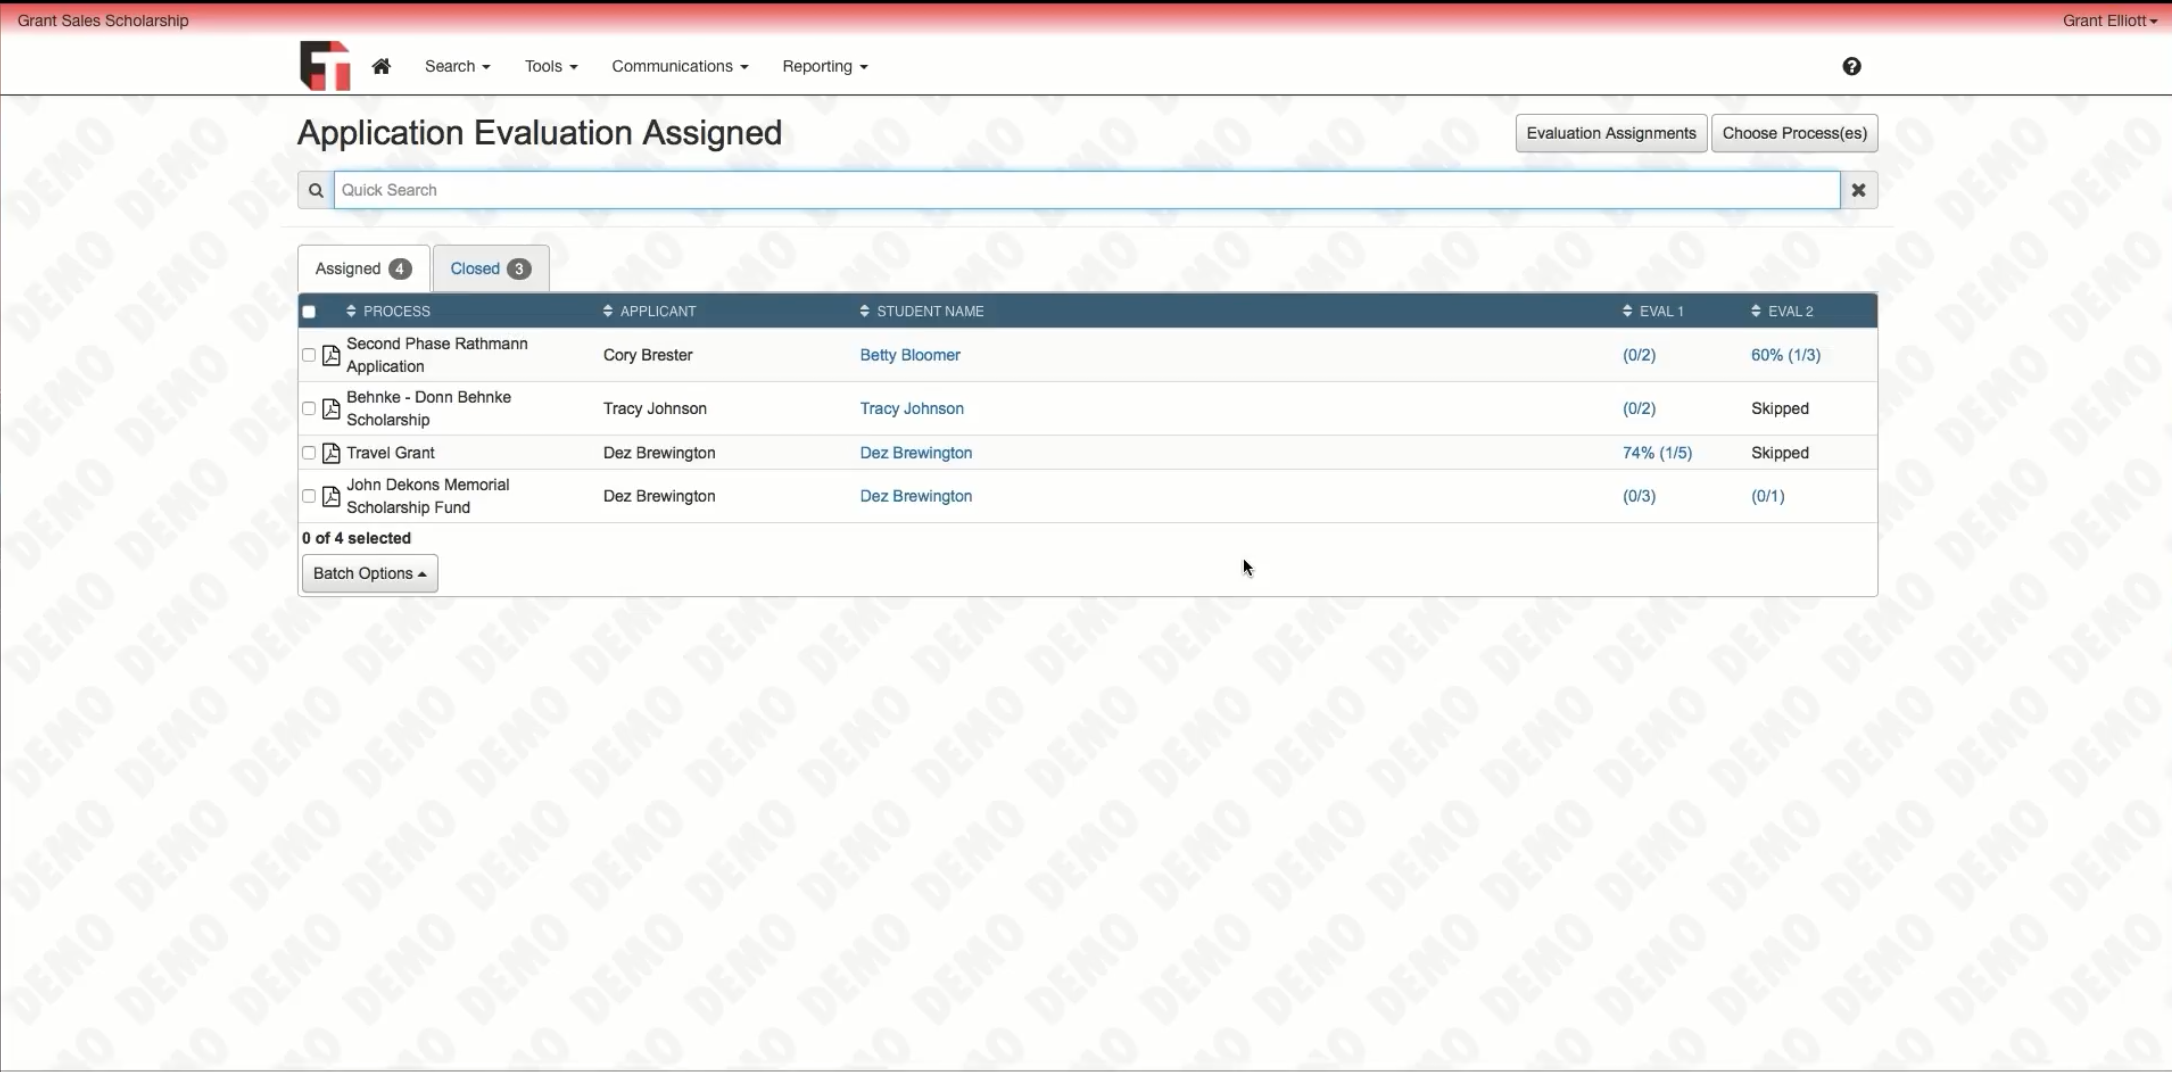 Assign applications out to reviewers and check evaluation status